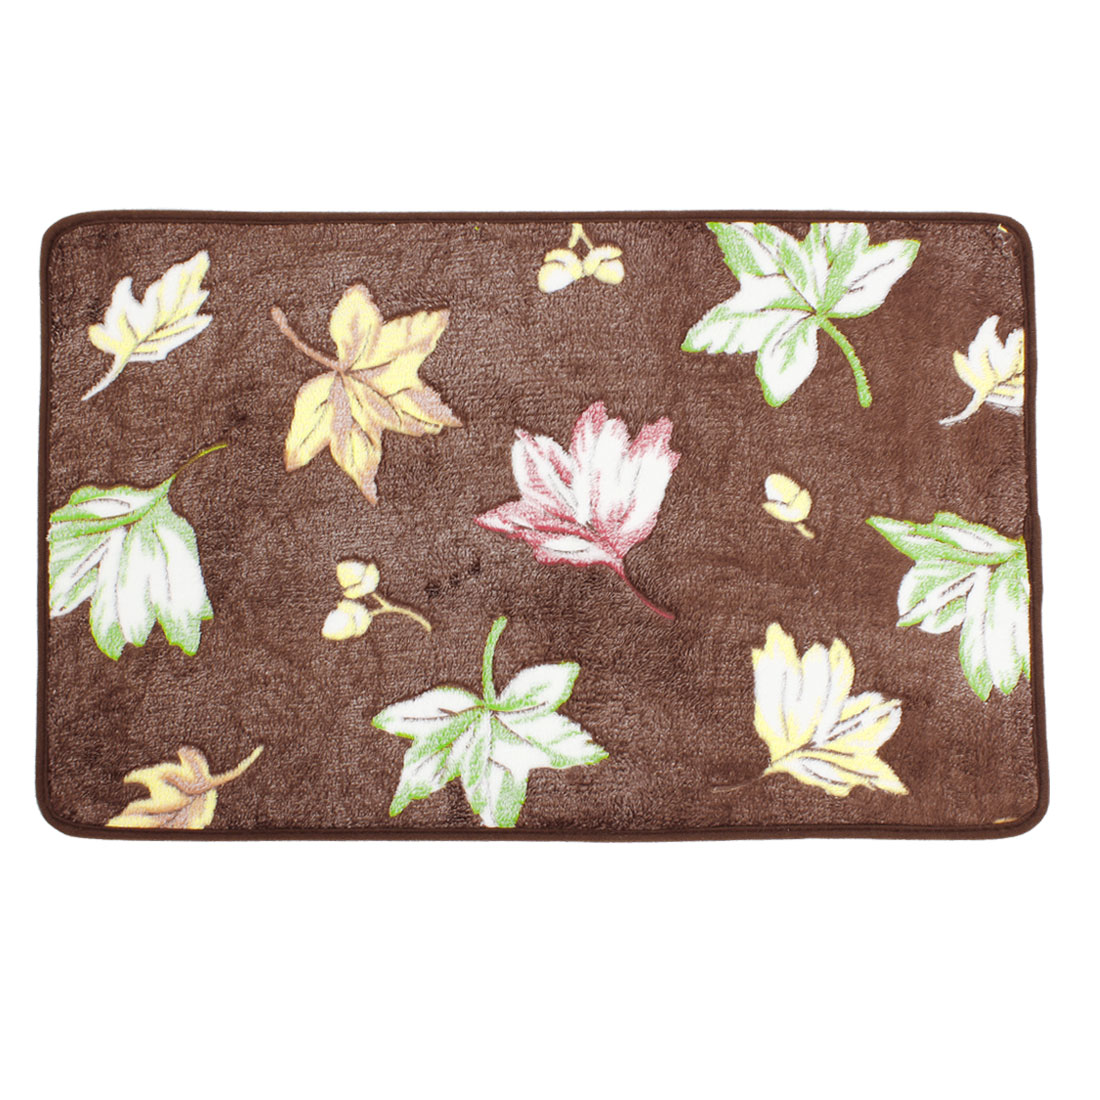 Coffee Color Maple Leaves Patetrn Kitchen Mat Area Rug Carpet 70cm x 45cm